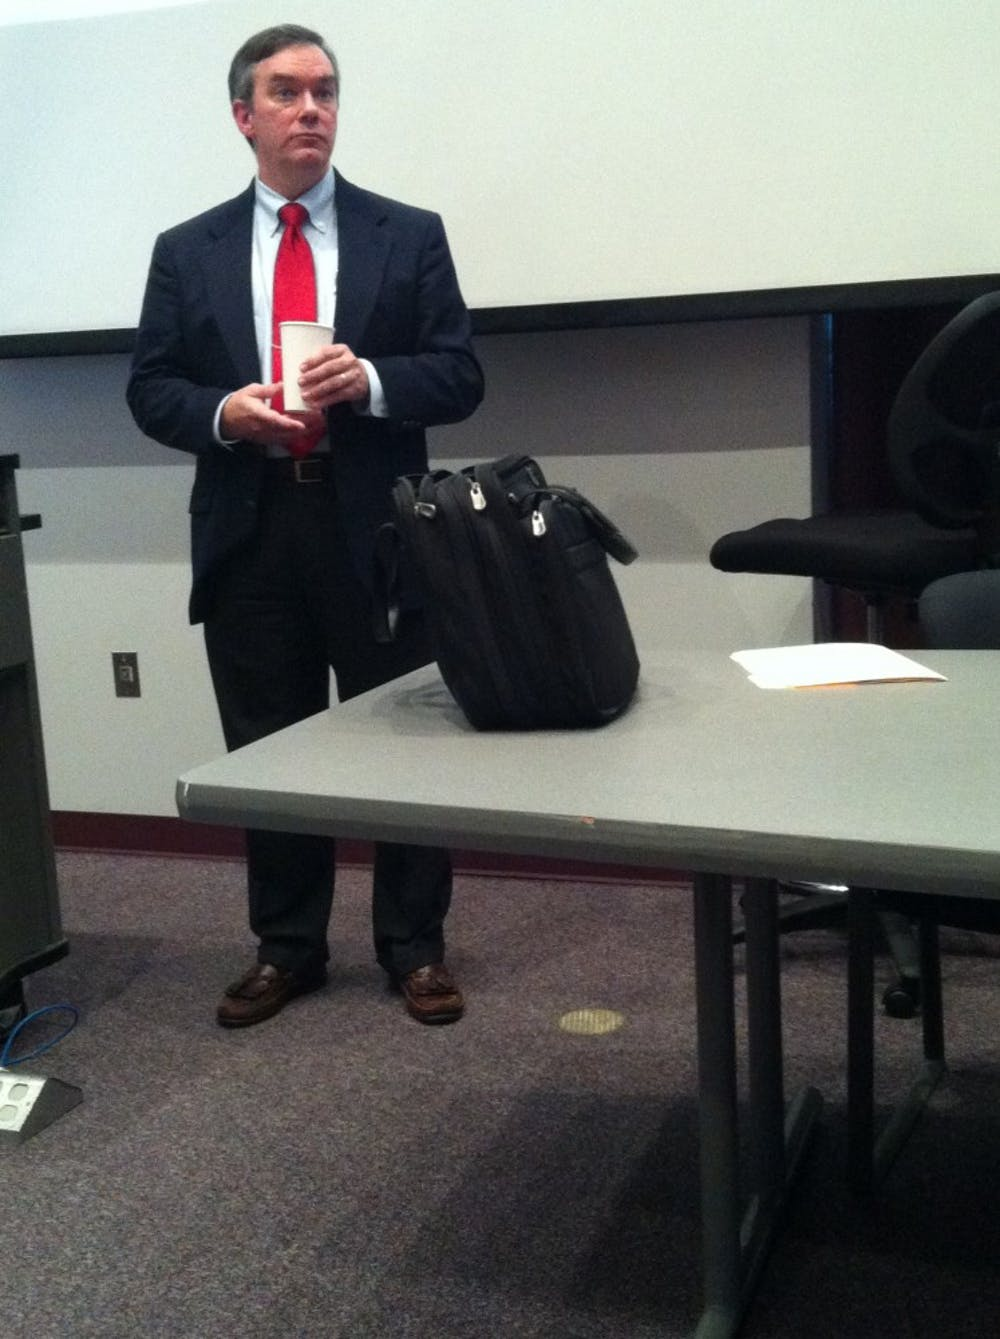 Research scholar speaks to students about Holocaust